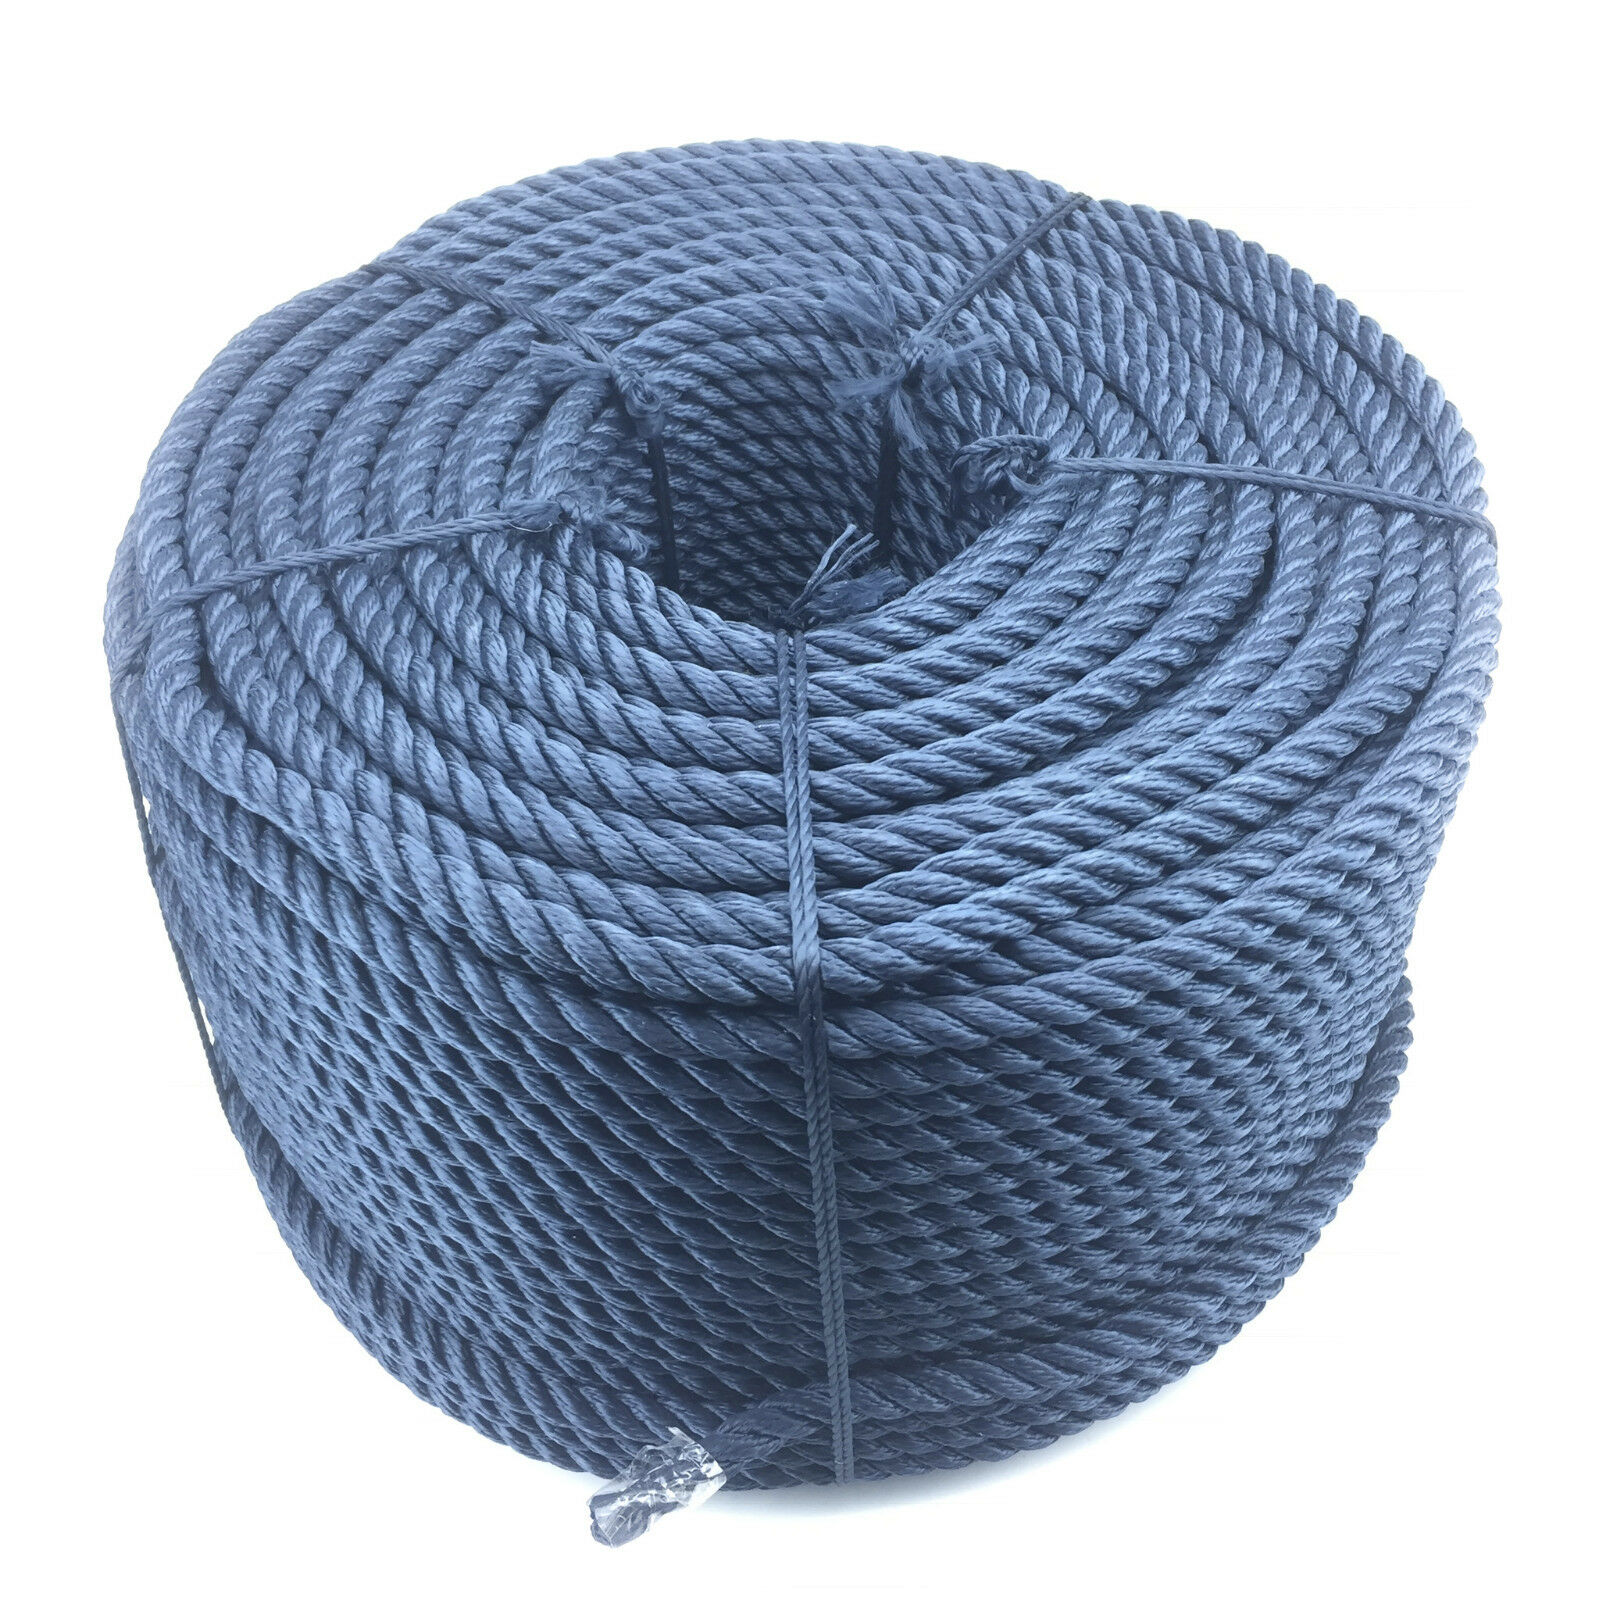 18mm Navy bluee 3 Strand Multifilament Softline Rope x 20 Metres (Floating Rope)